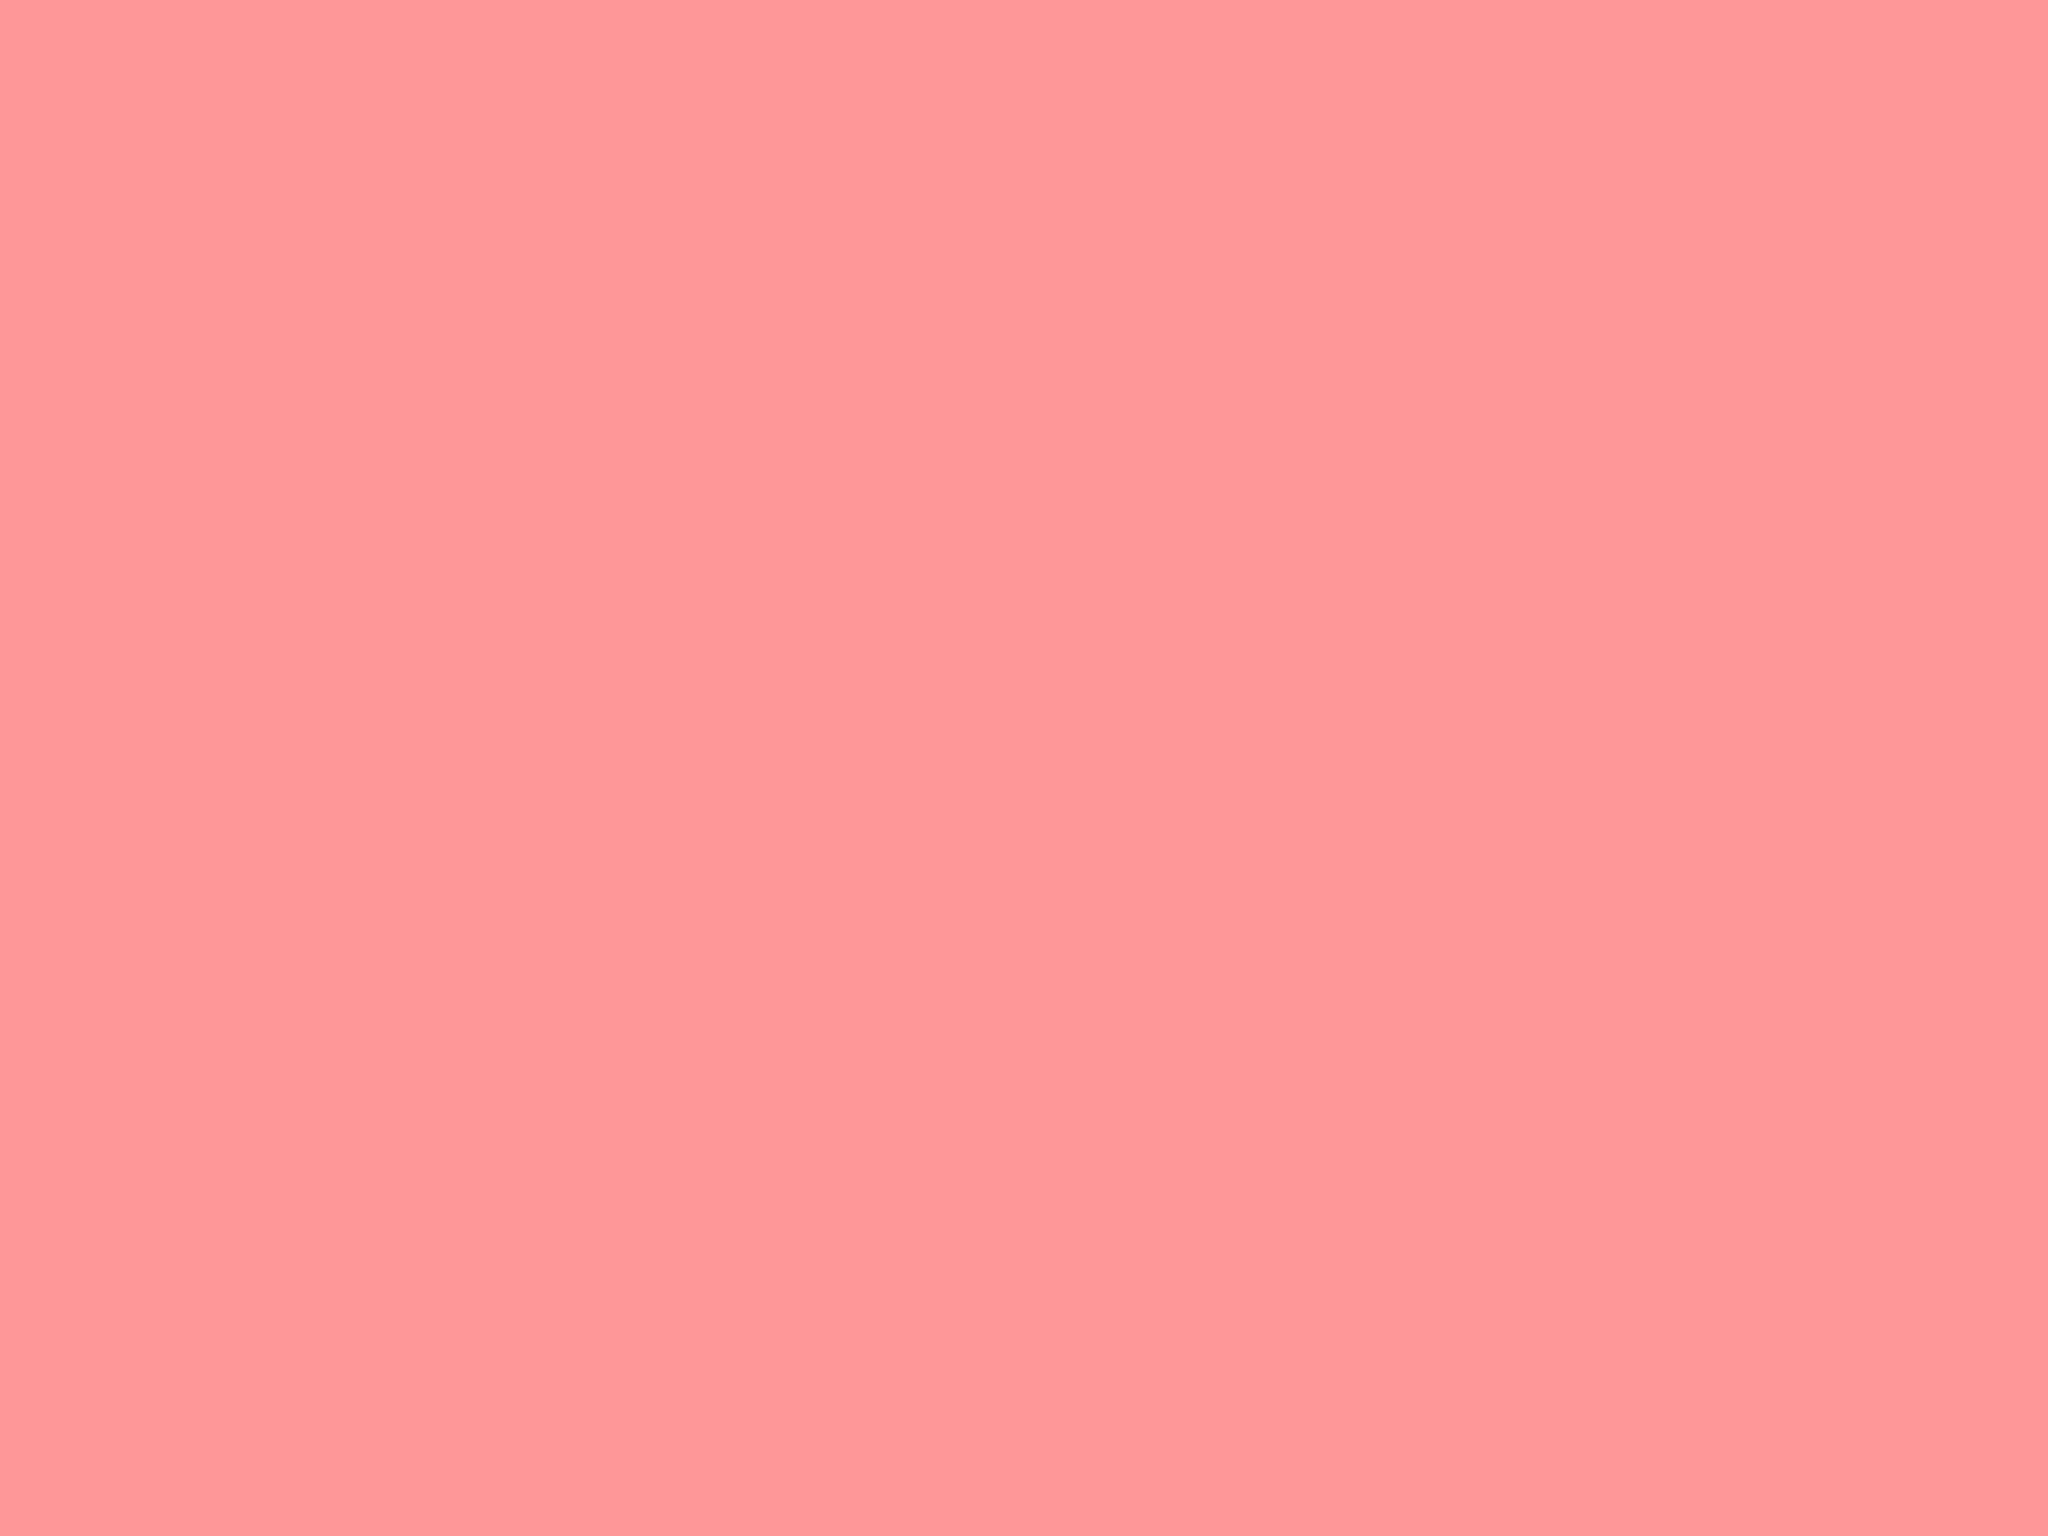 2048x1536 Light Salmon Pink Solid Color Background